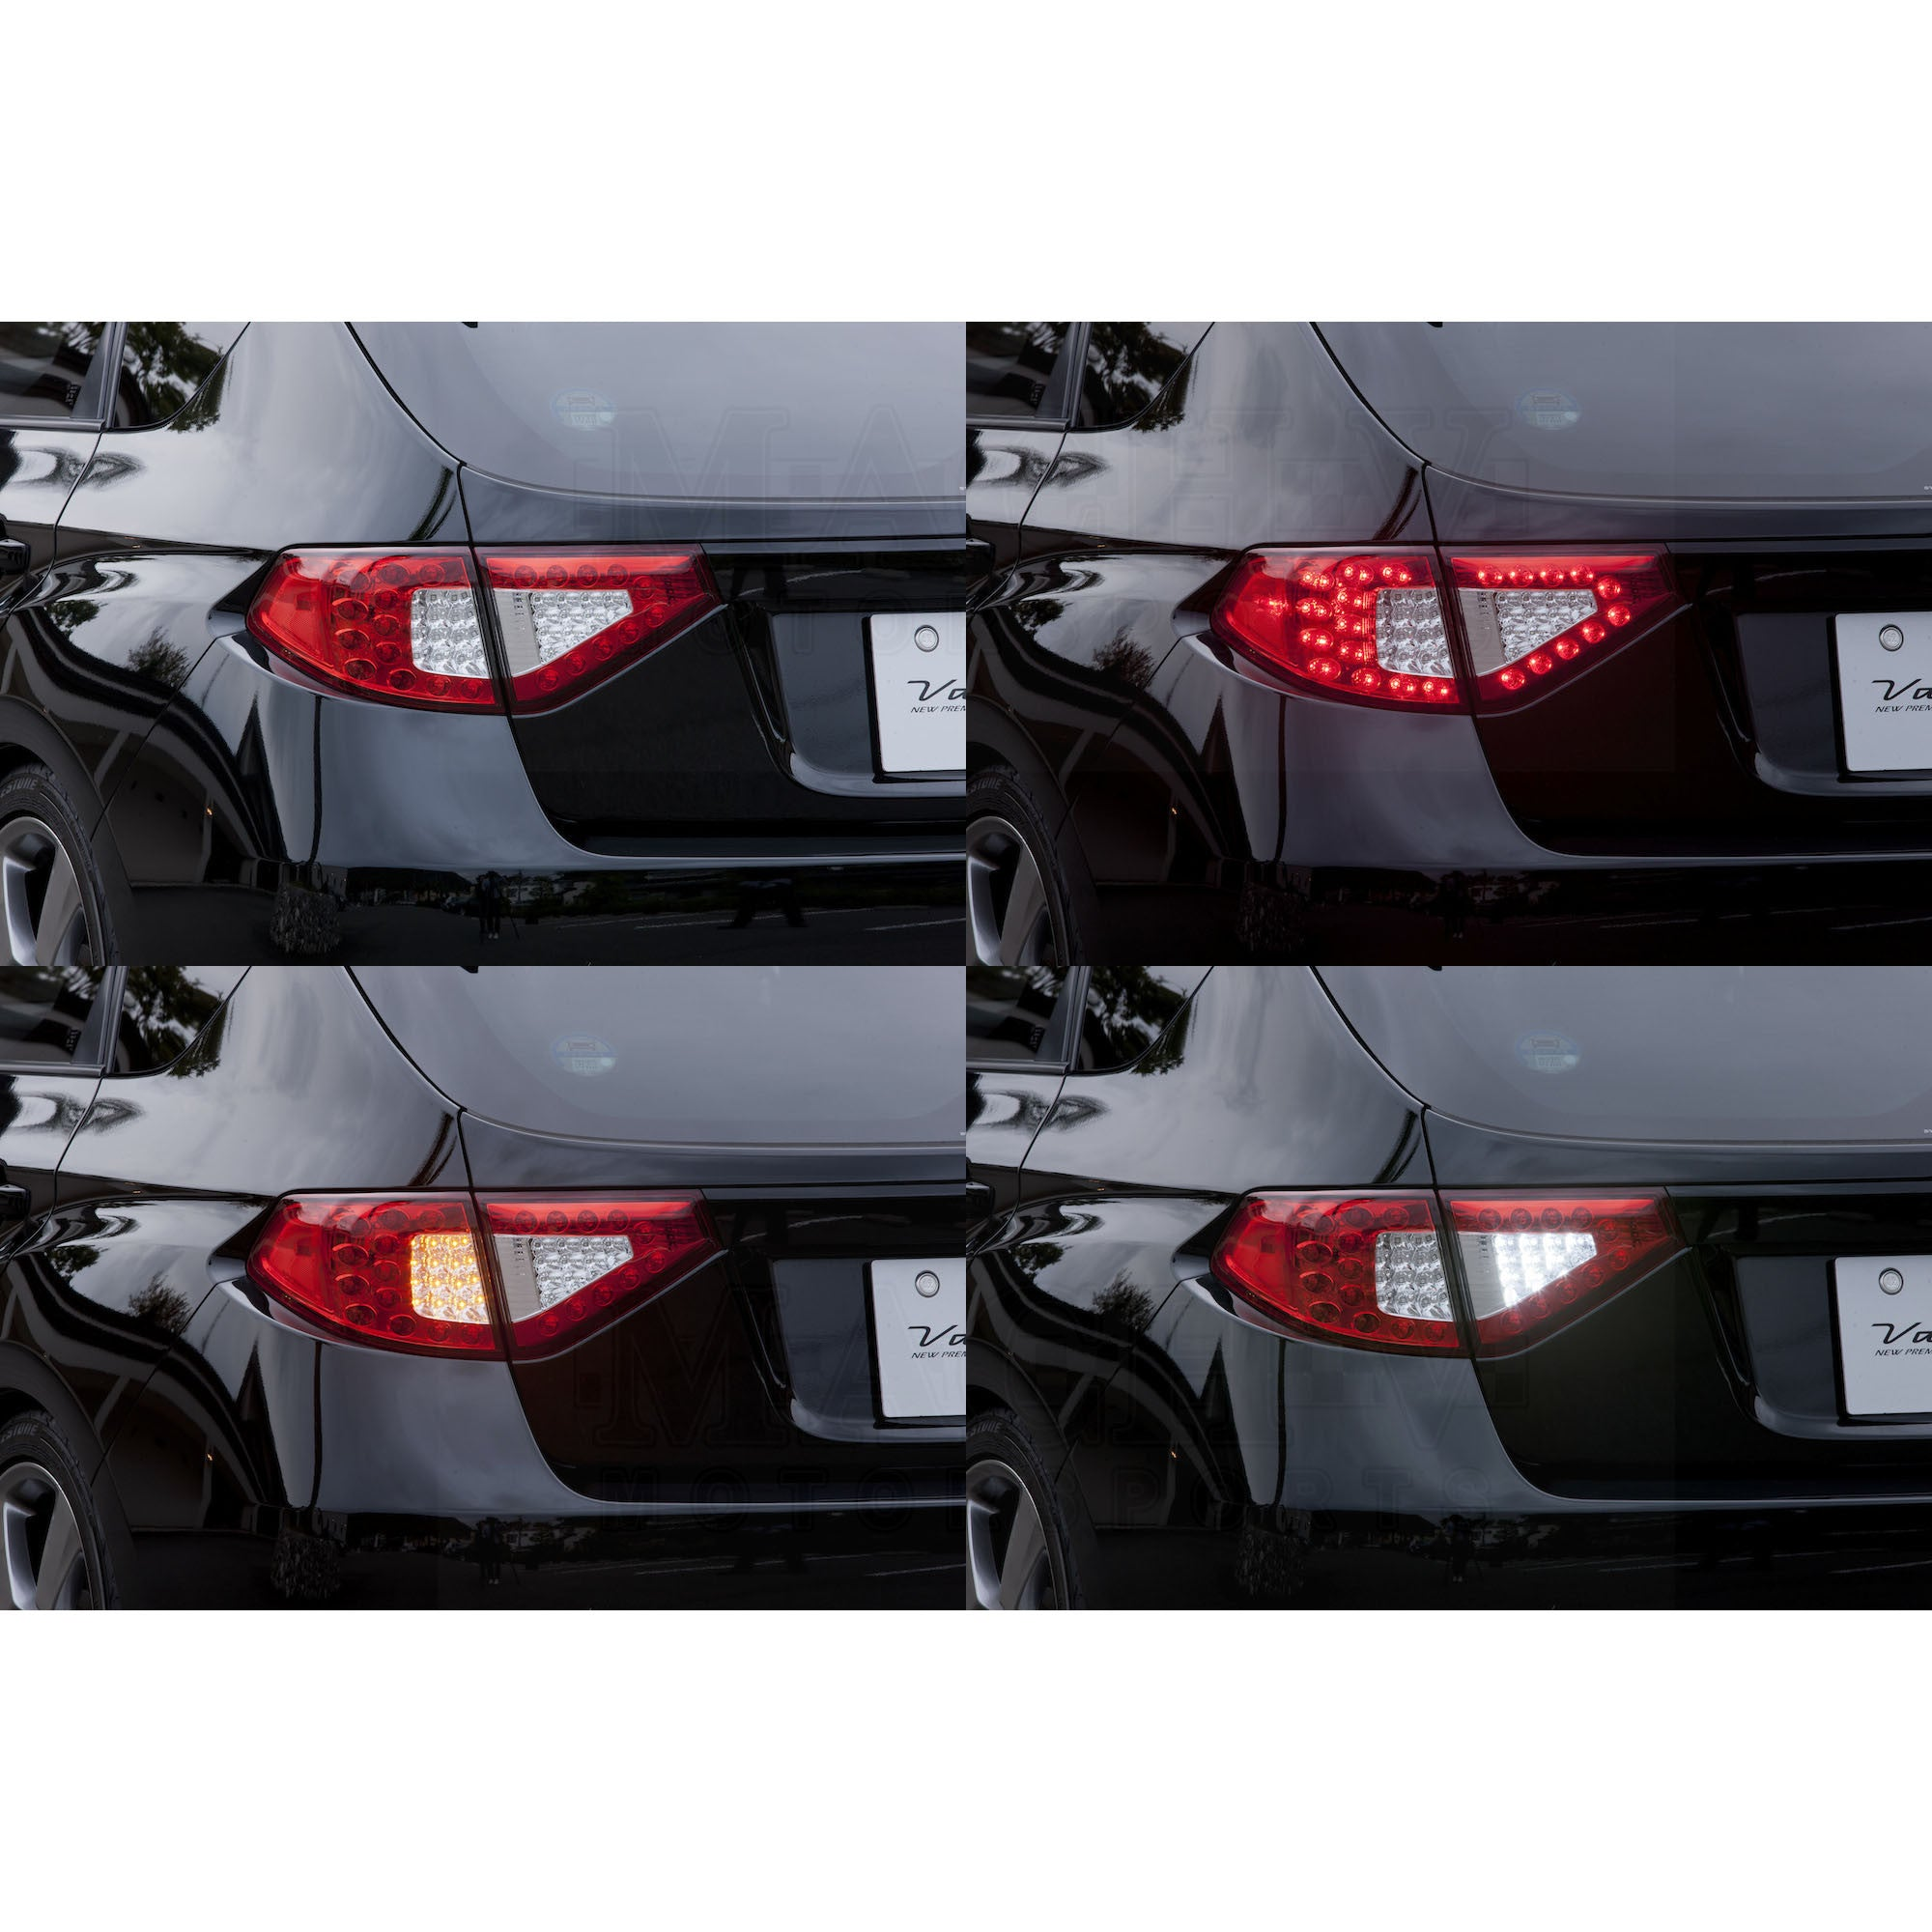 Wrx Sti Hatchback Led Tail Lights Valenti Jewel Led